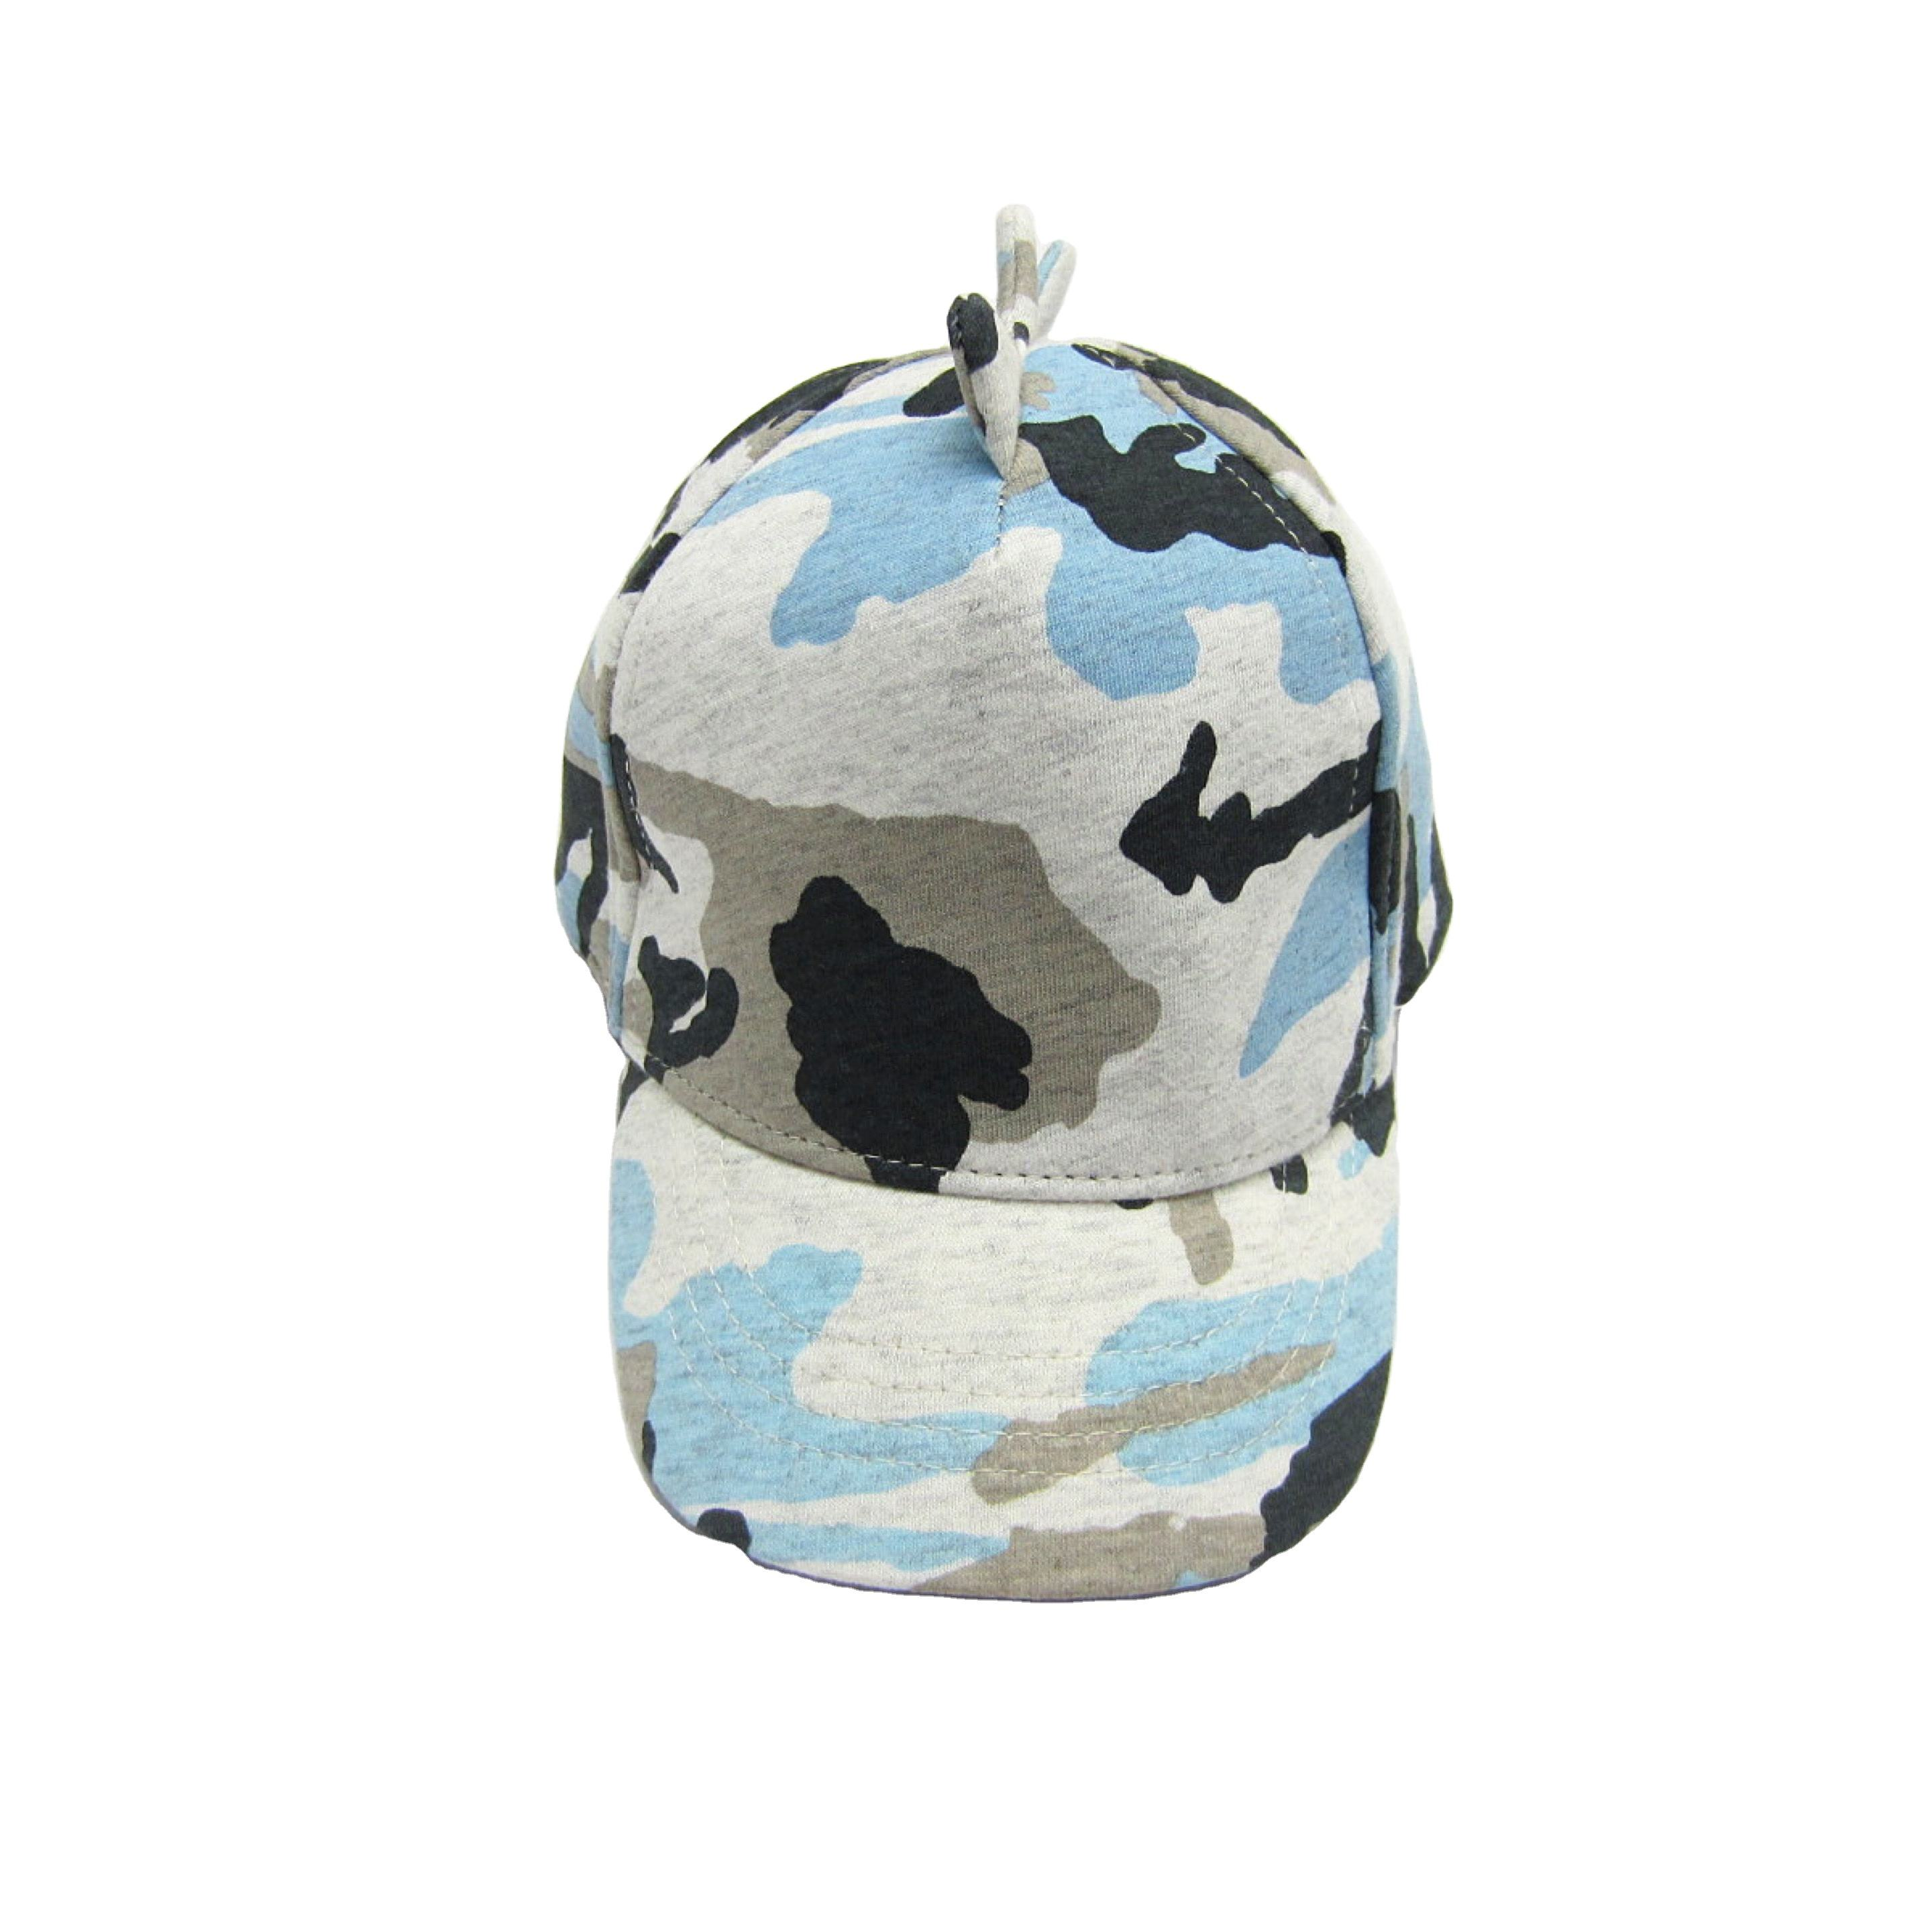 Boys New 100% Cotton Jersey Printed Camo Baseball caps with 3D angles and full linings